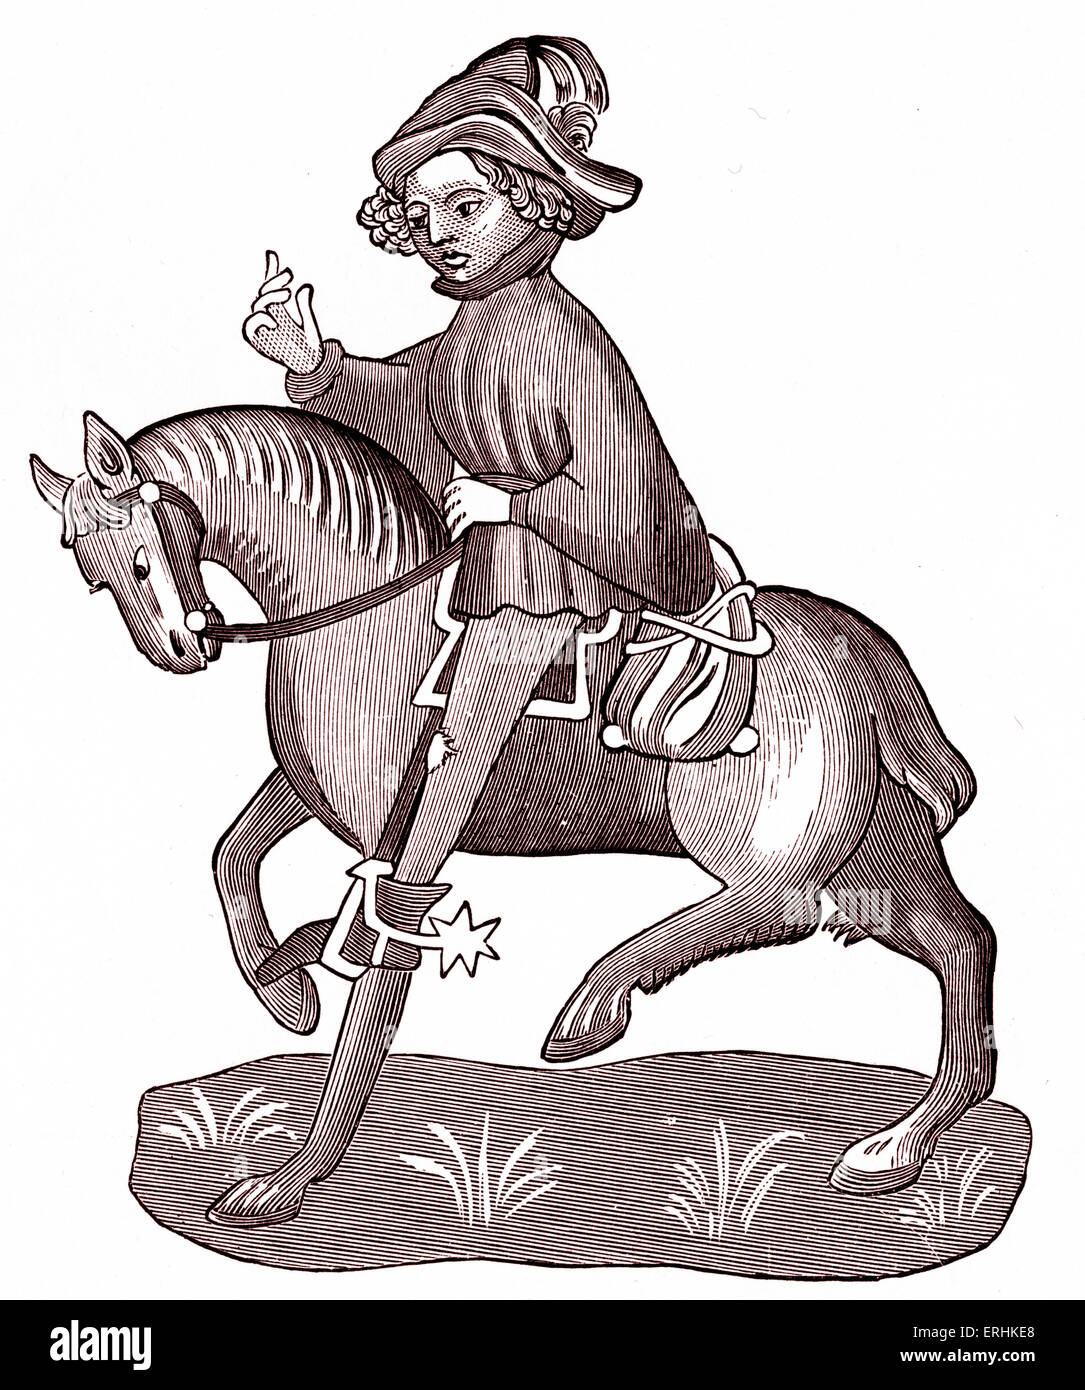 Geoffrey Chaucer's The Canon's Yeoman on horseback - from The Canterbury Tales. c. 1343-1400. Ellesemere - Stock Image